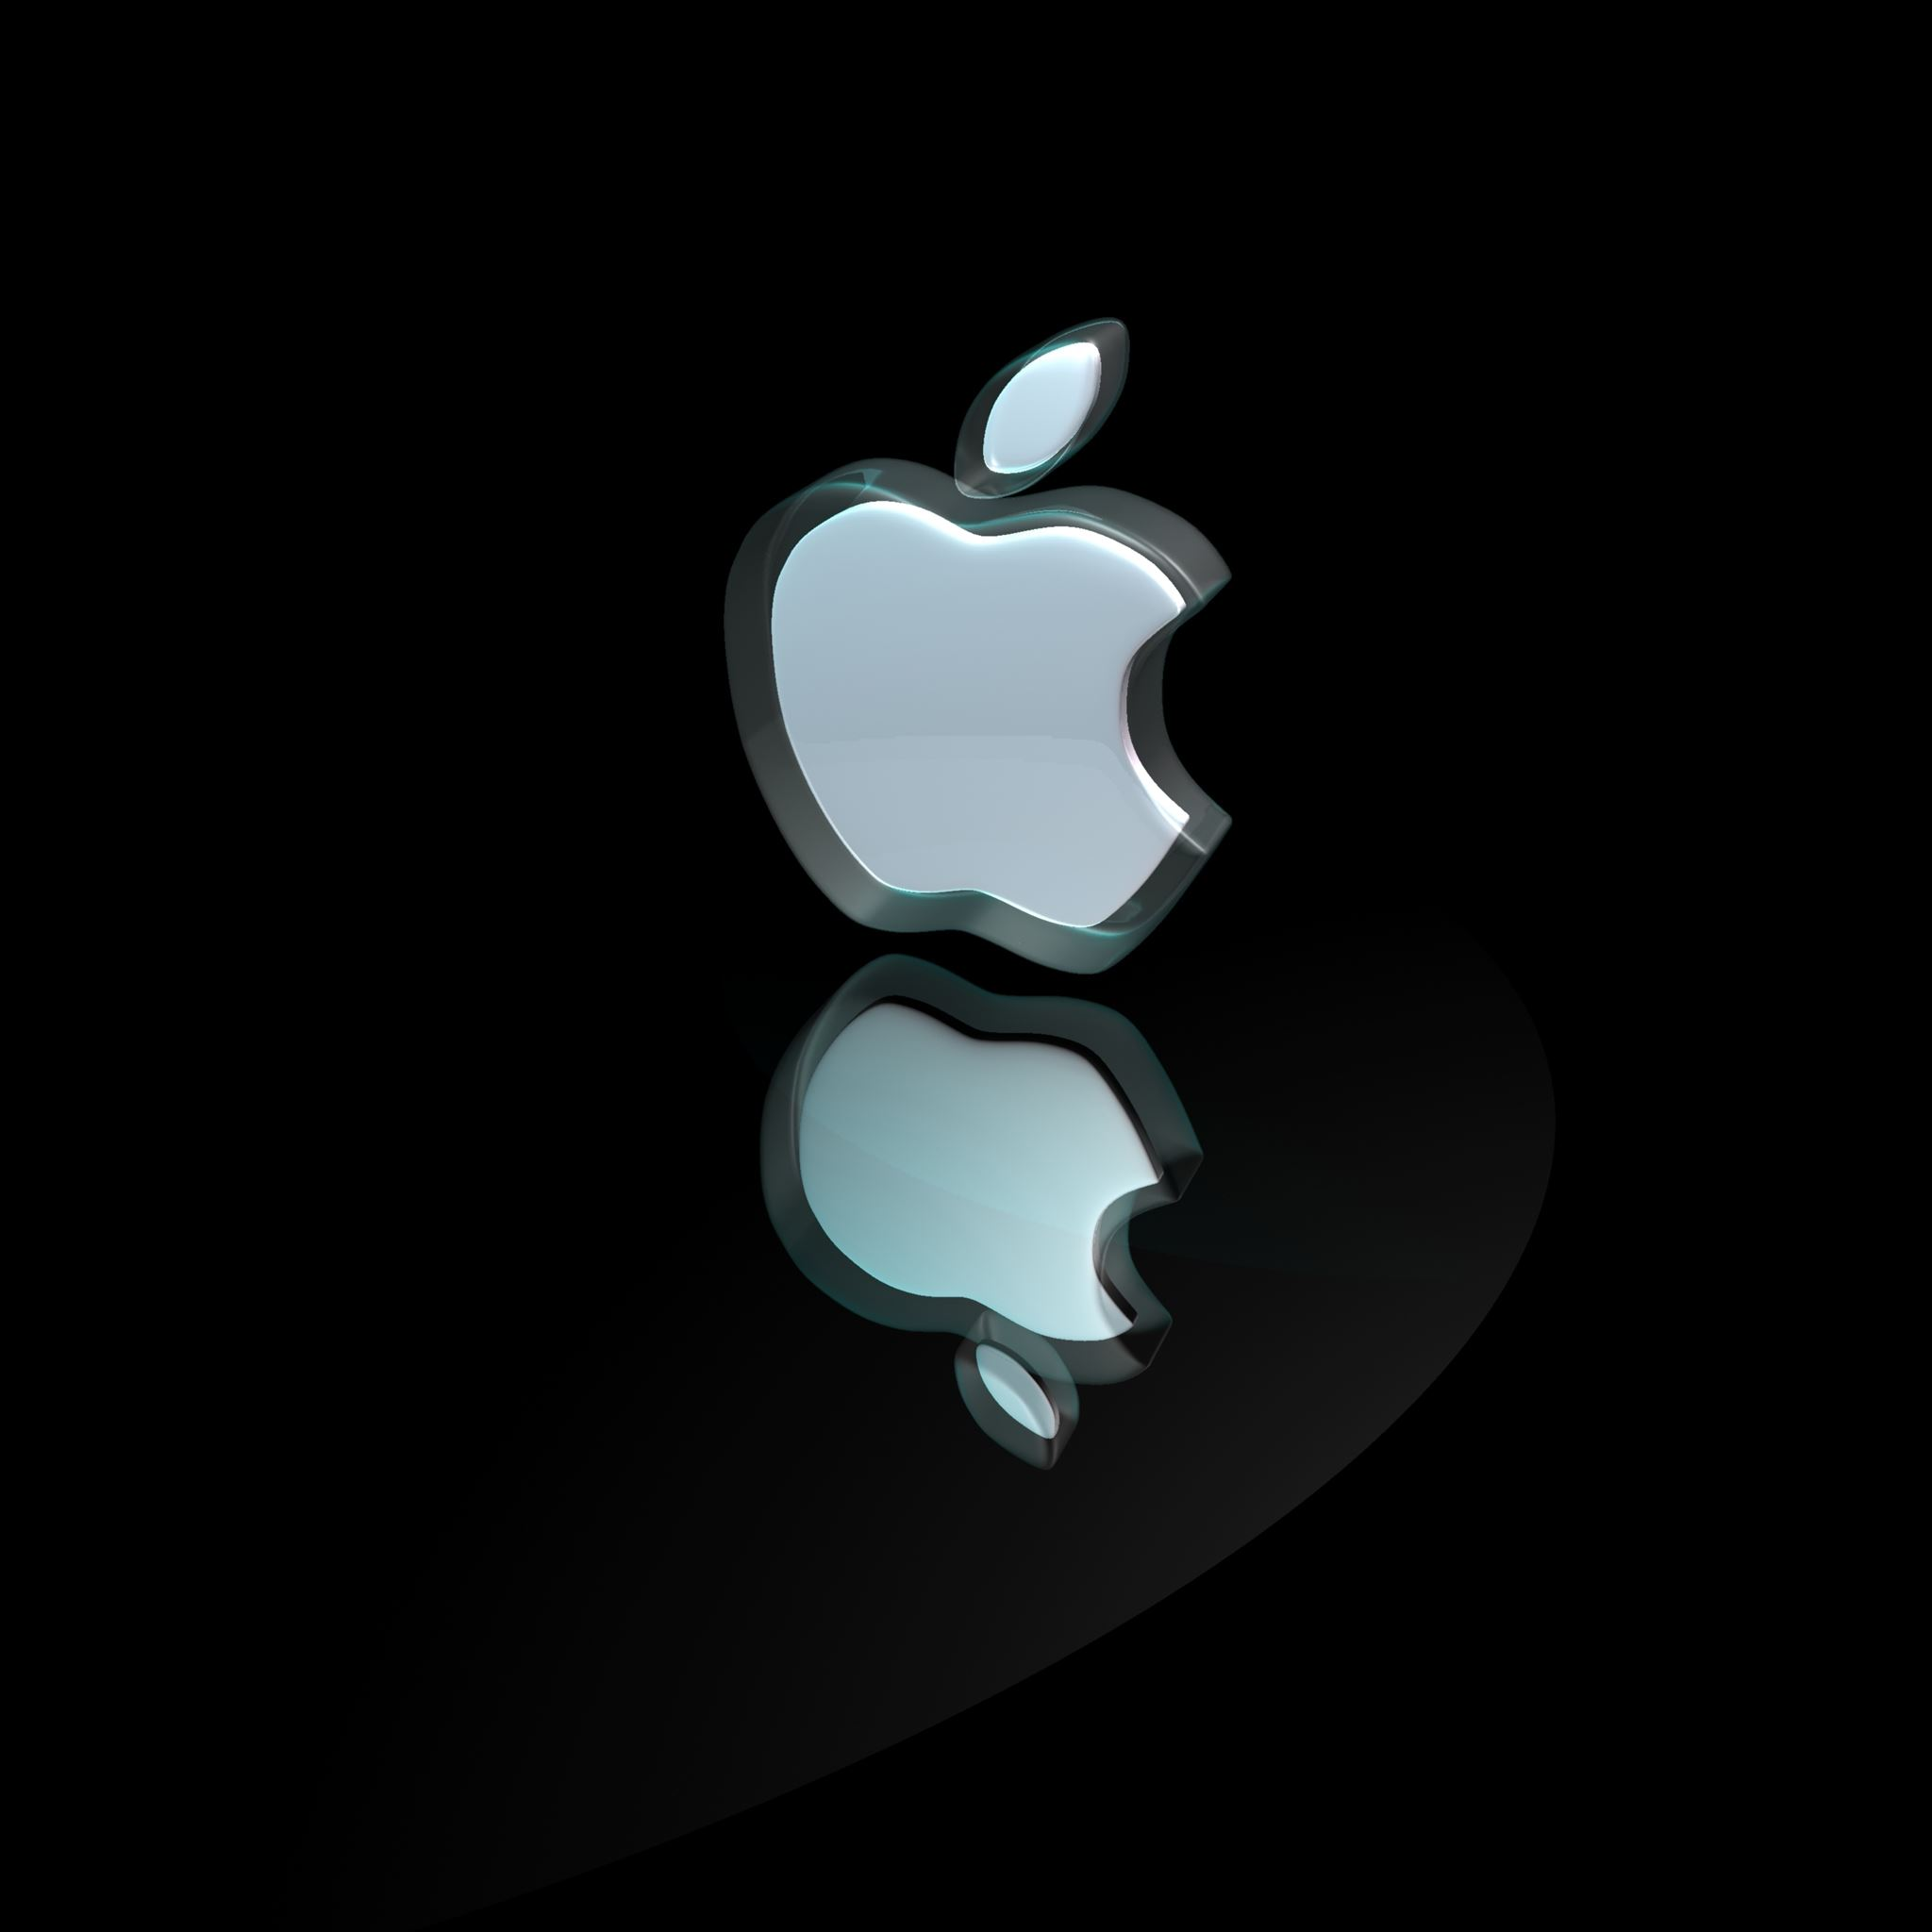 3D Apple Logo iPad Air Wallpapers Free Download